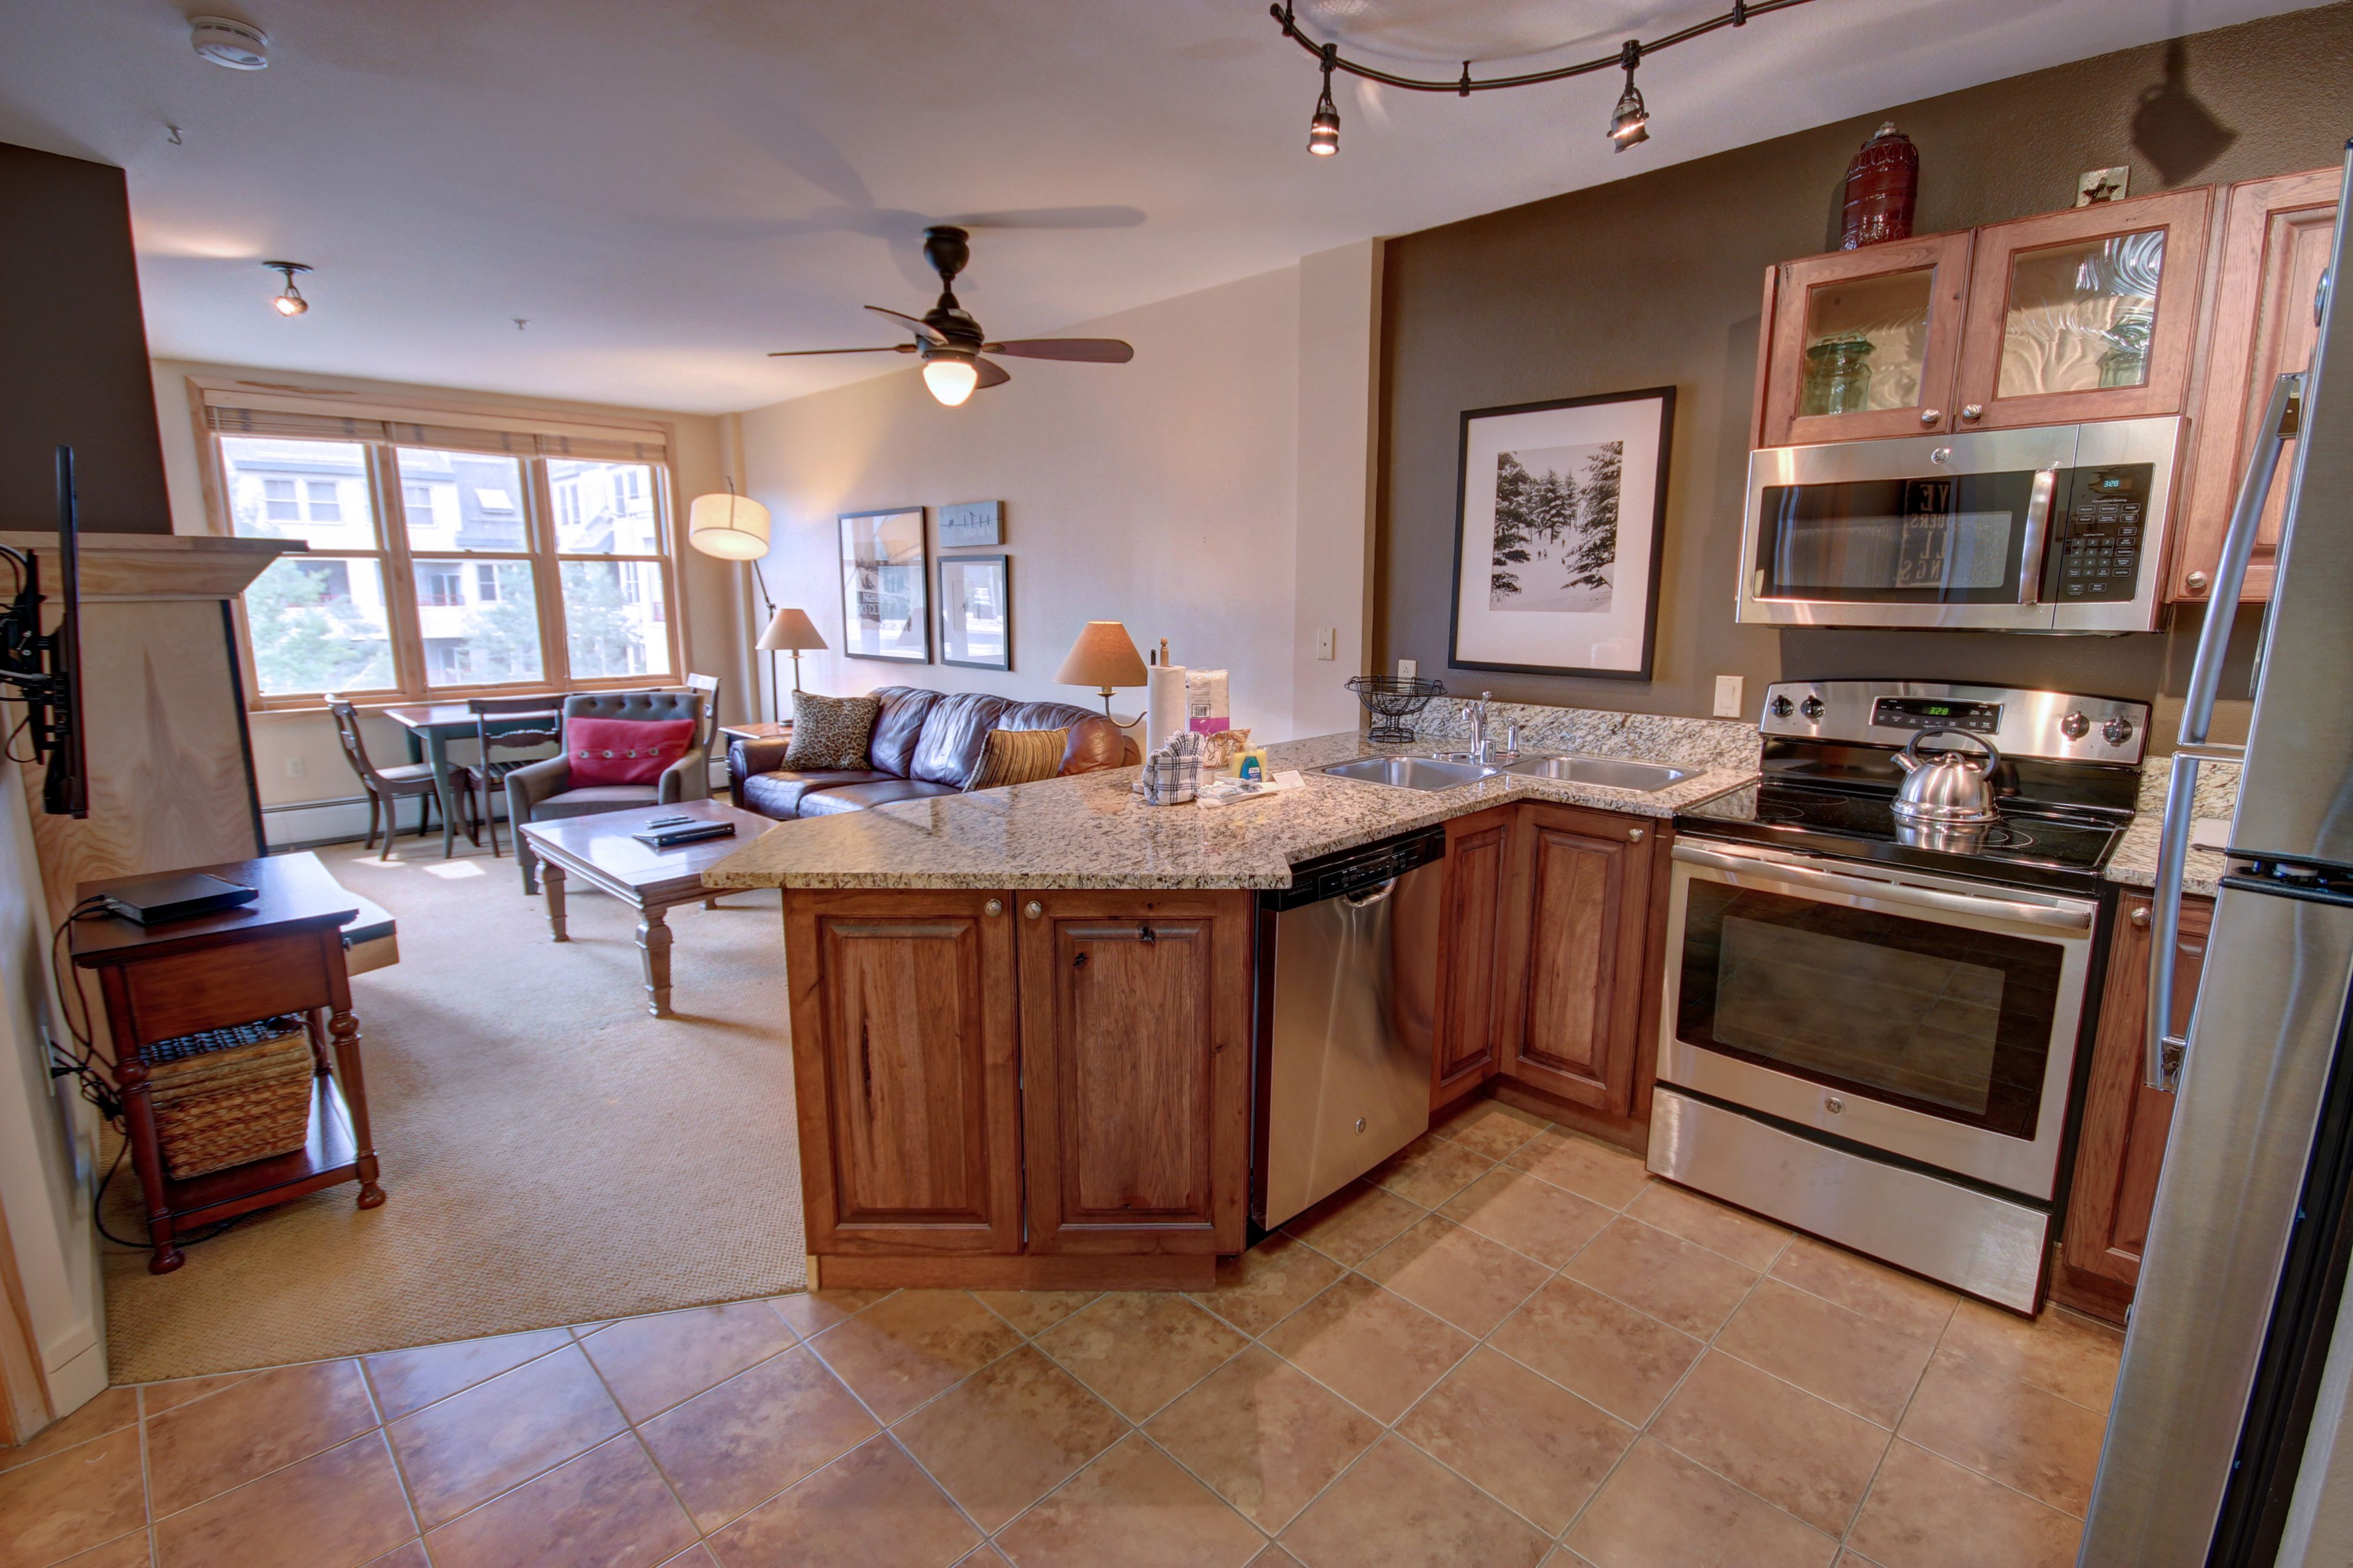 Kitchen with room to cook wonderful meals